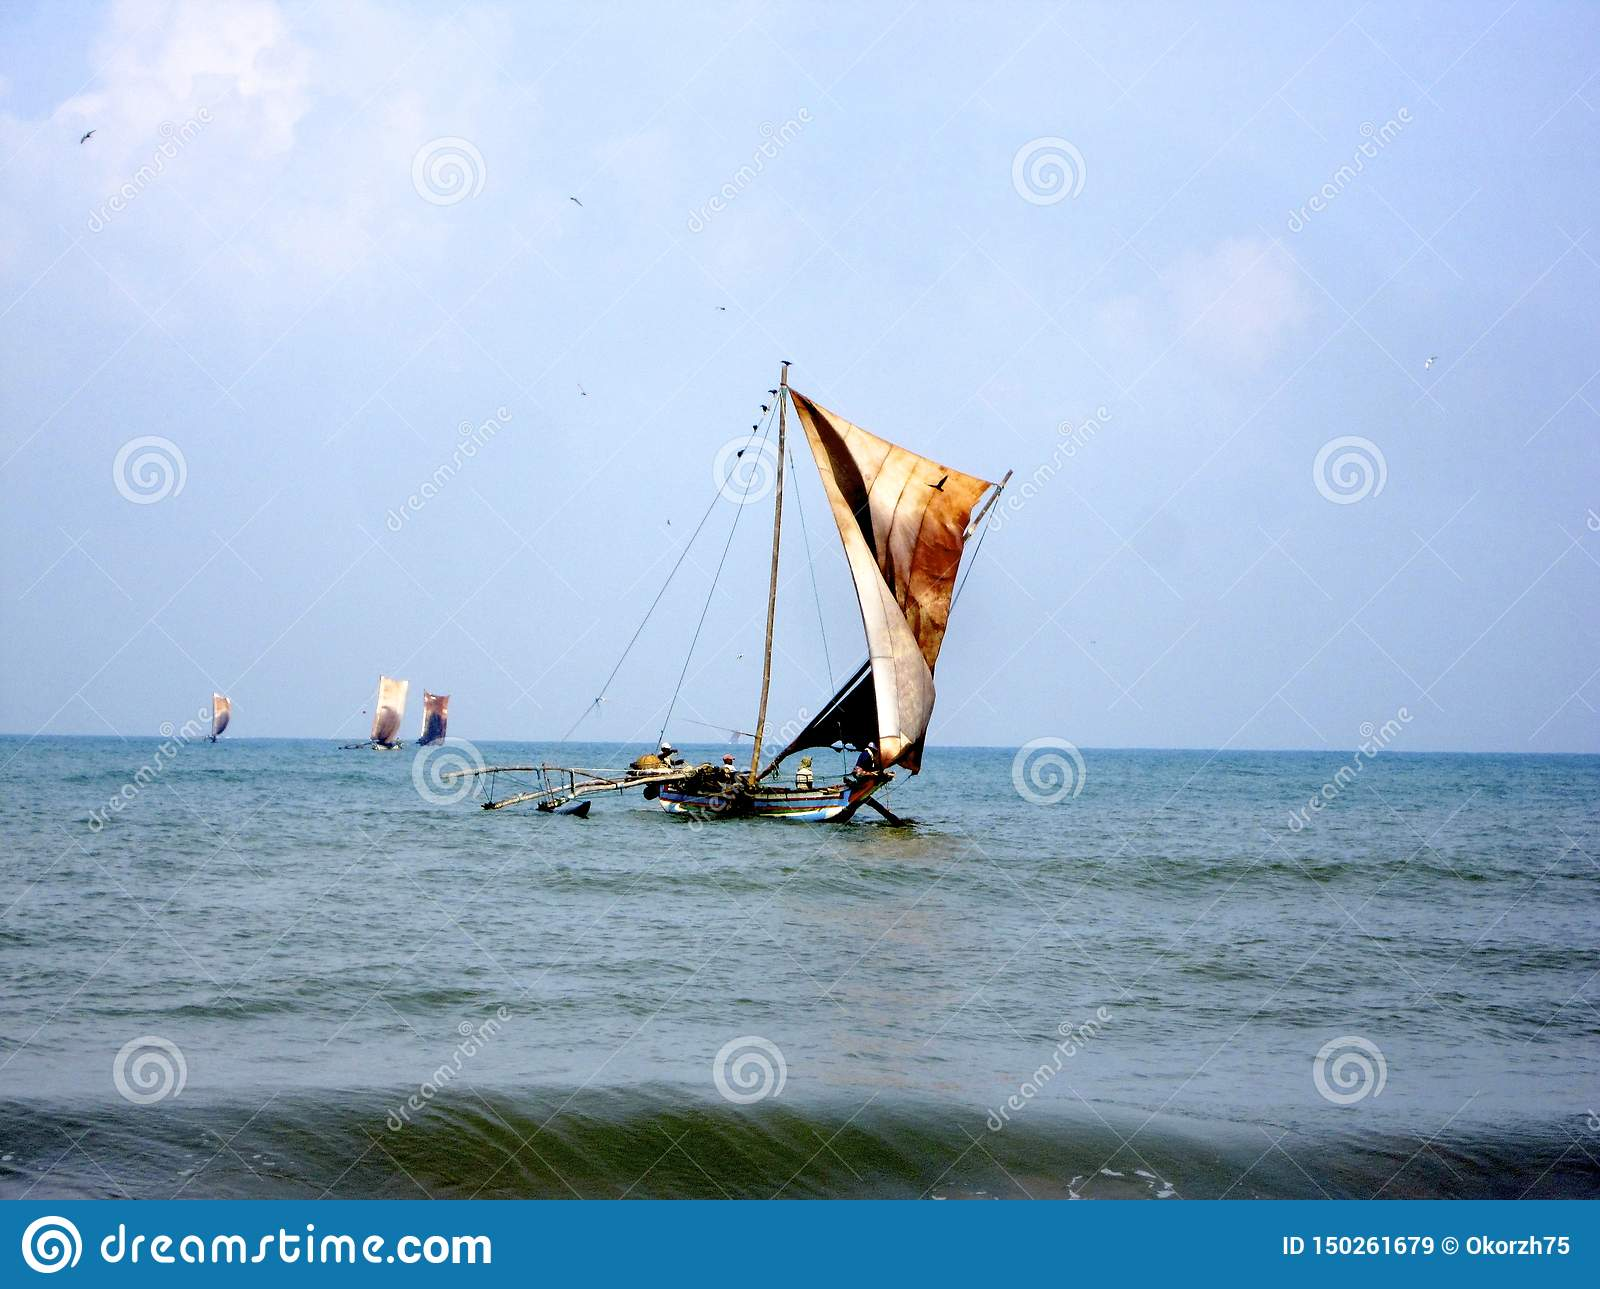 Beautiful wooden ship with leather sails on mast fluttering in wind